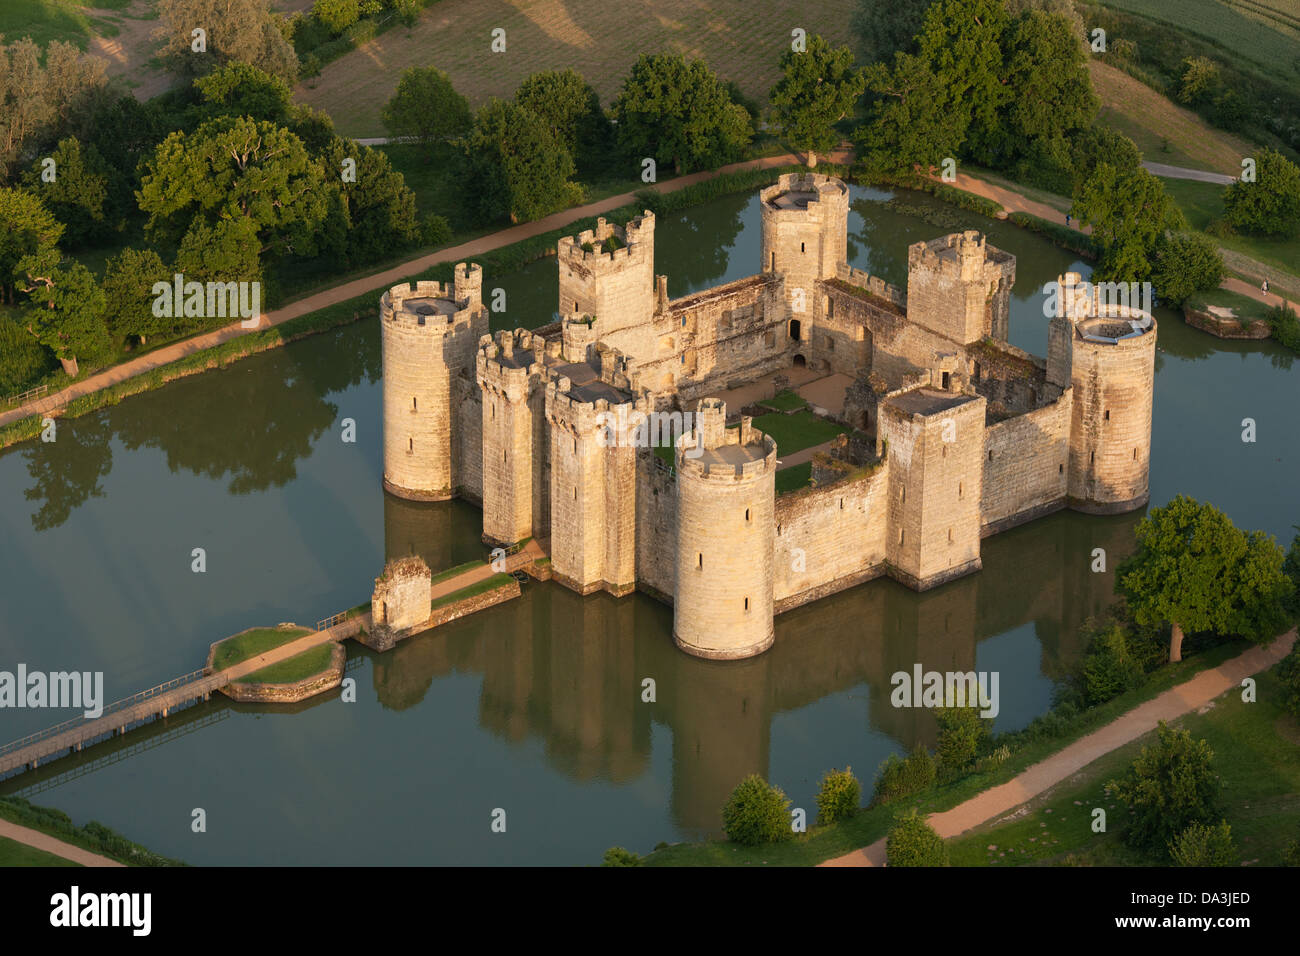 BODIAM MEDIEVAL CASTLE (aerial View). East Sussex, England, Great Britain, Design Inspirations